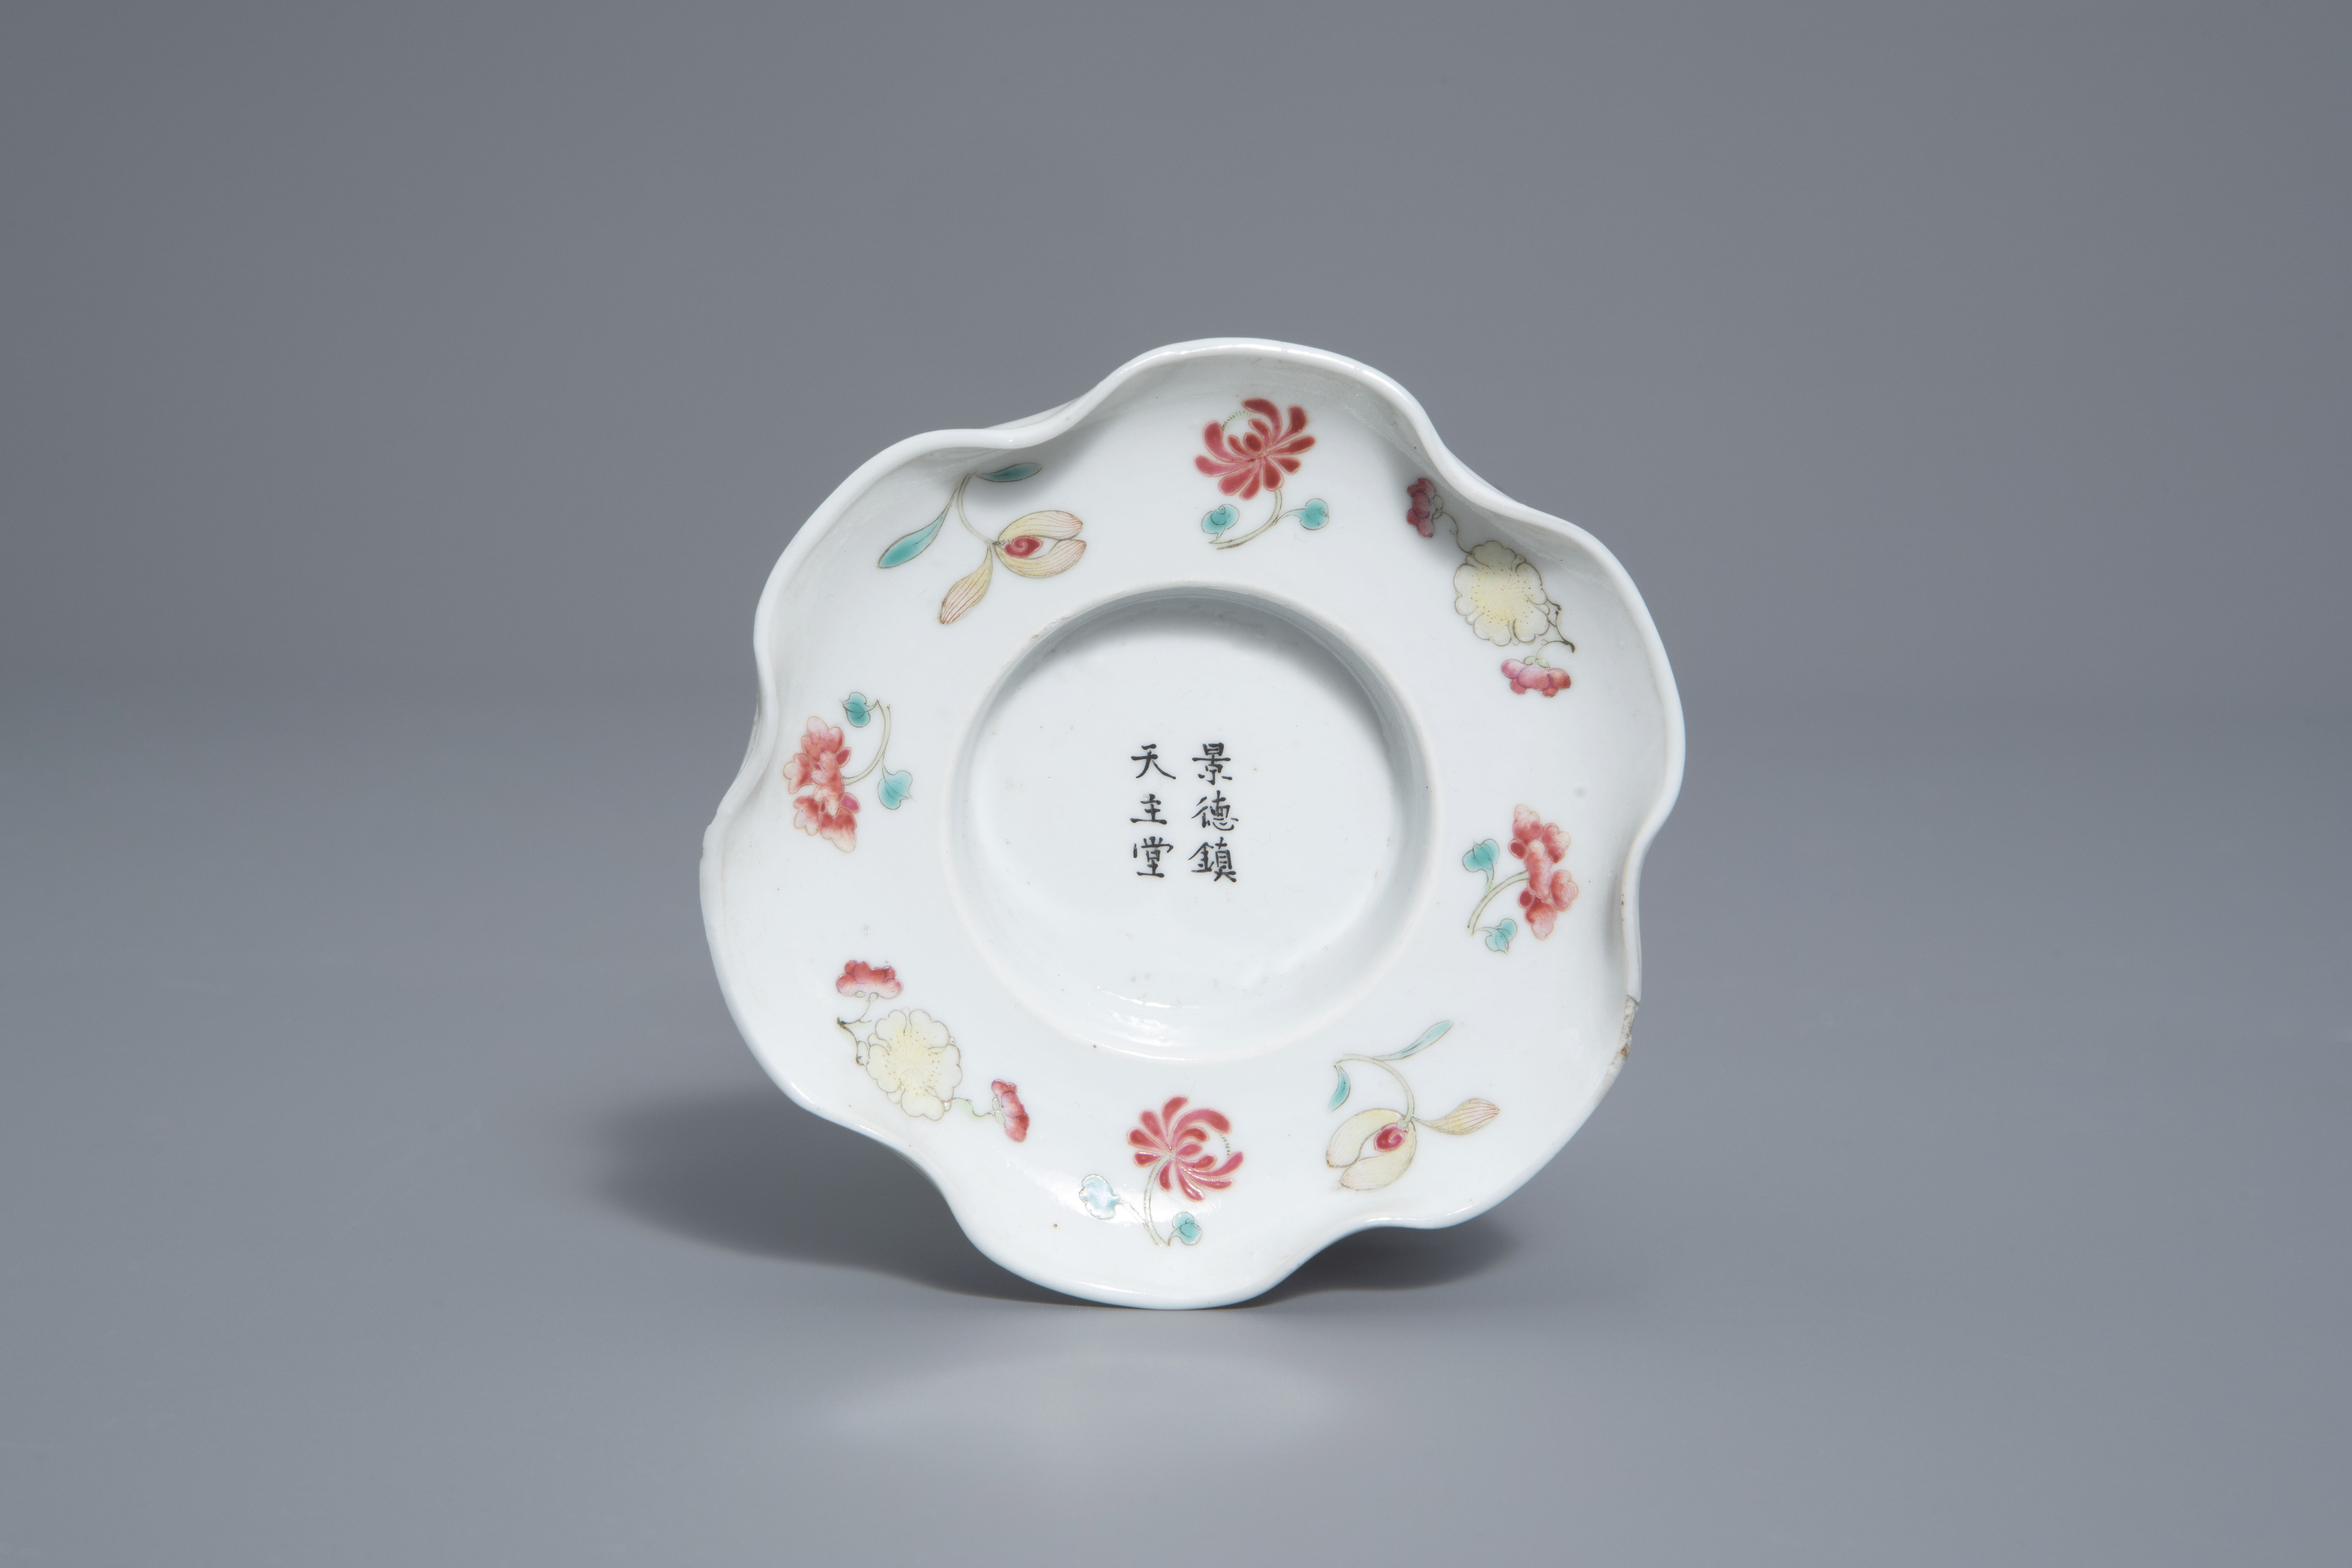 A varied collection of Chinese blue and white and famille rose porcelain, 19th/20th C. - Image 14 of 15